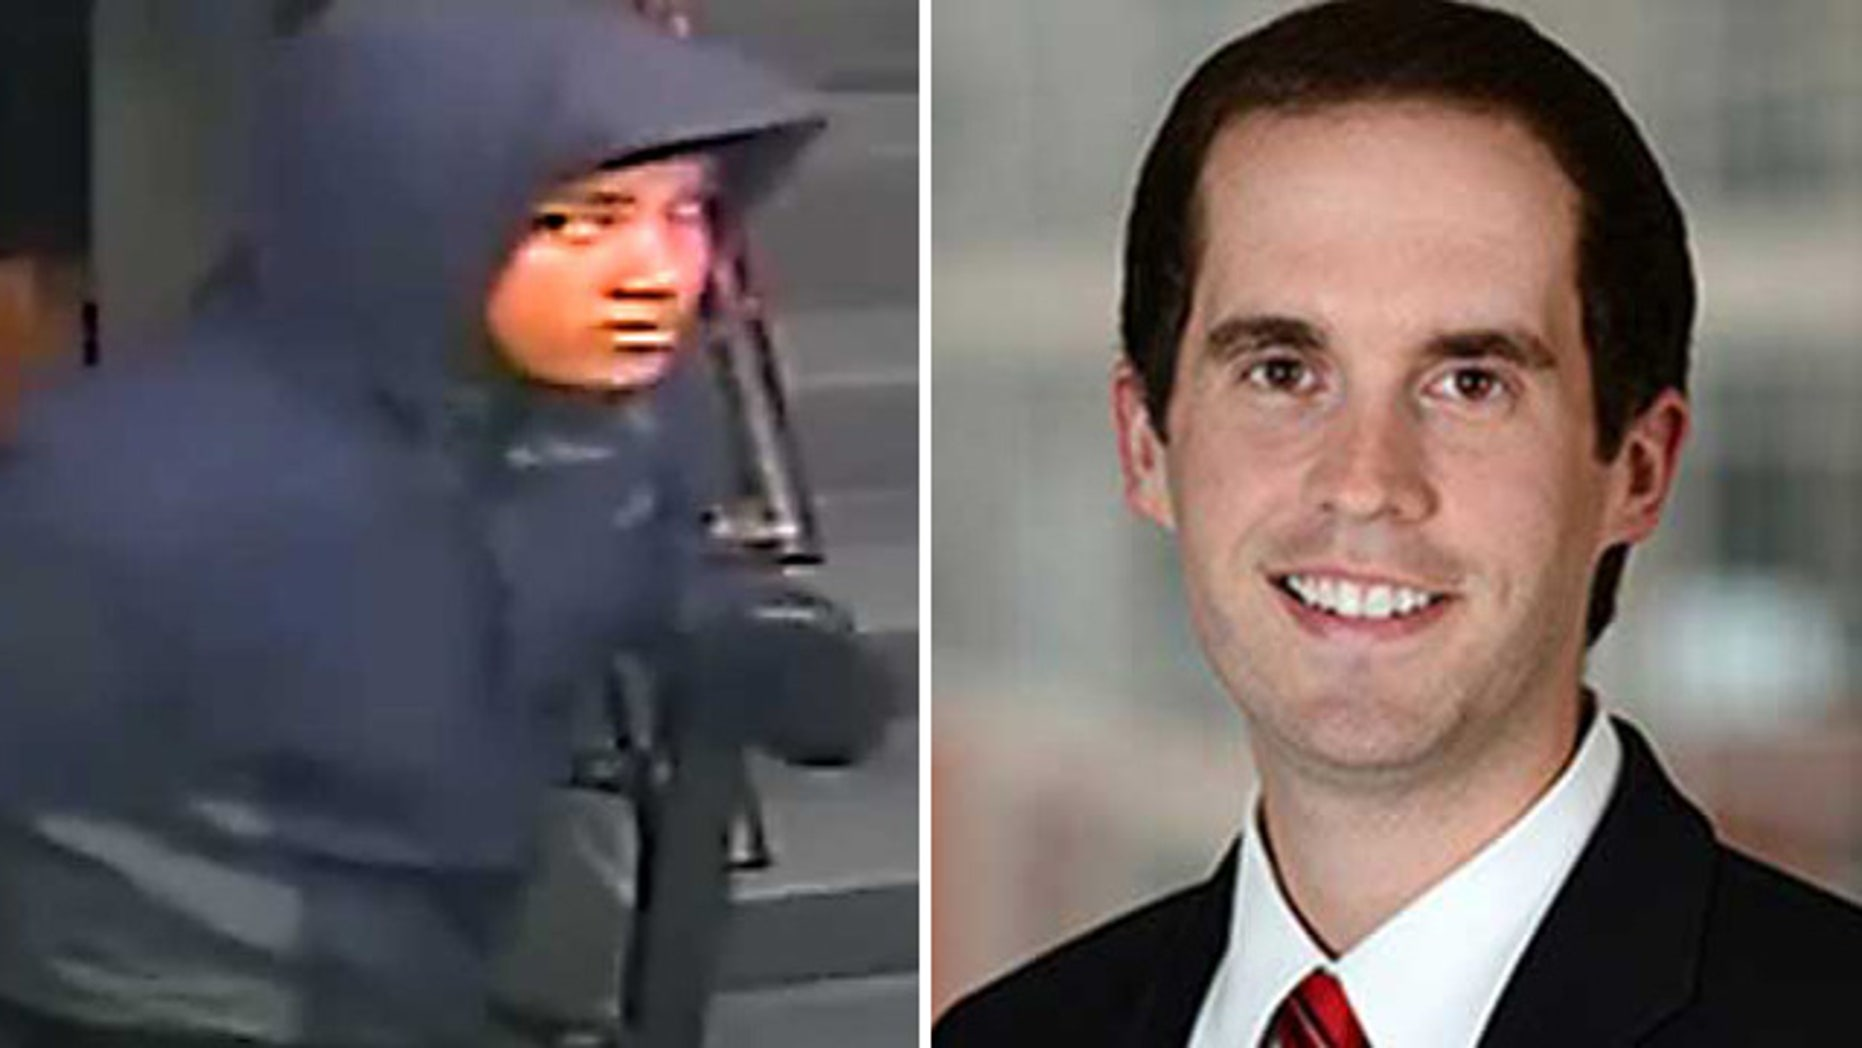 These photos show a person of interest, left, in the Feb. 9 stabbing death of attorney David Messerschmitt, right, at the Donovan Hotel in Washington, D.C. (Courtesy Metropolitan Police Department/MyFoxDC.com)